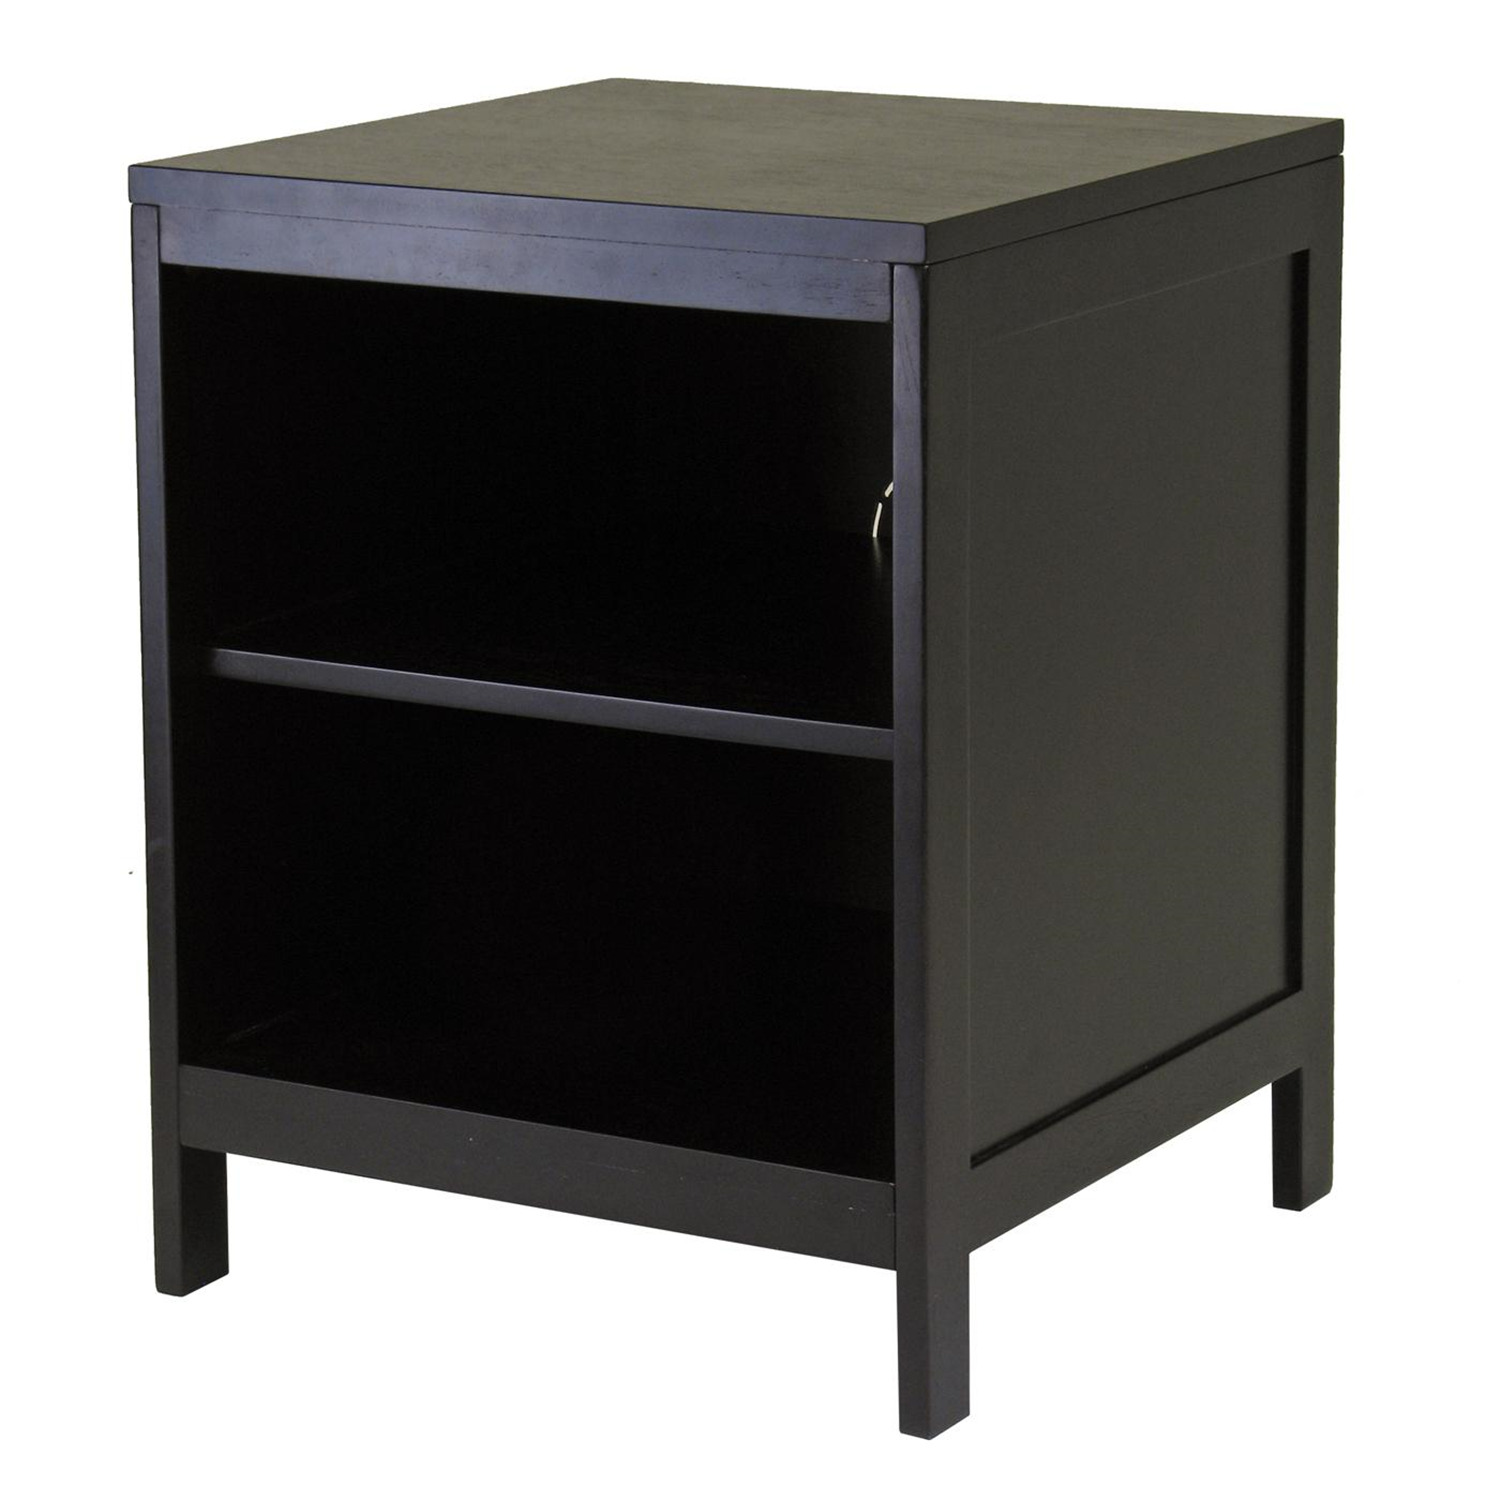 winsome hailey tv stand modular open shelf small by oj. Black Bedroom Furniture Sets. Home Design Ideas